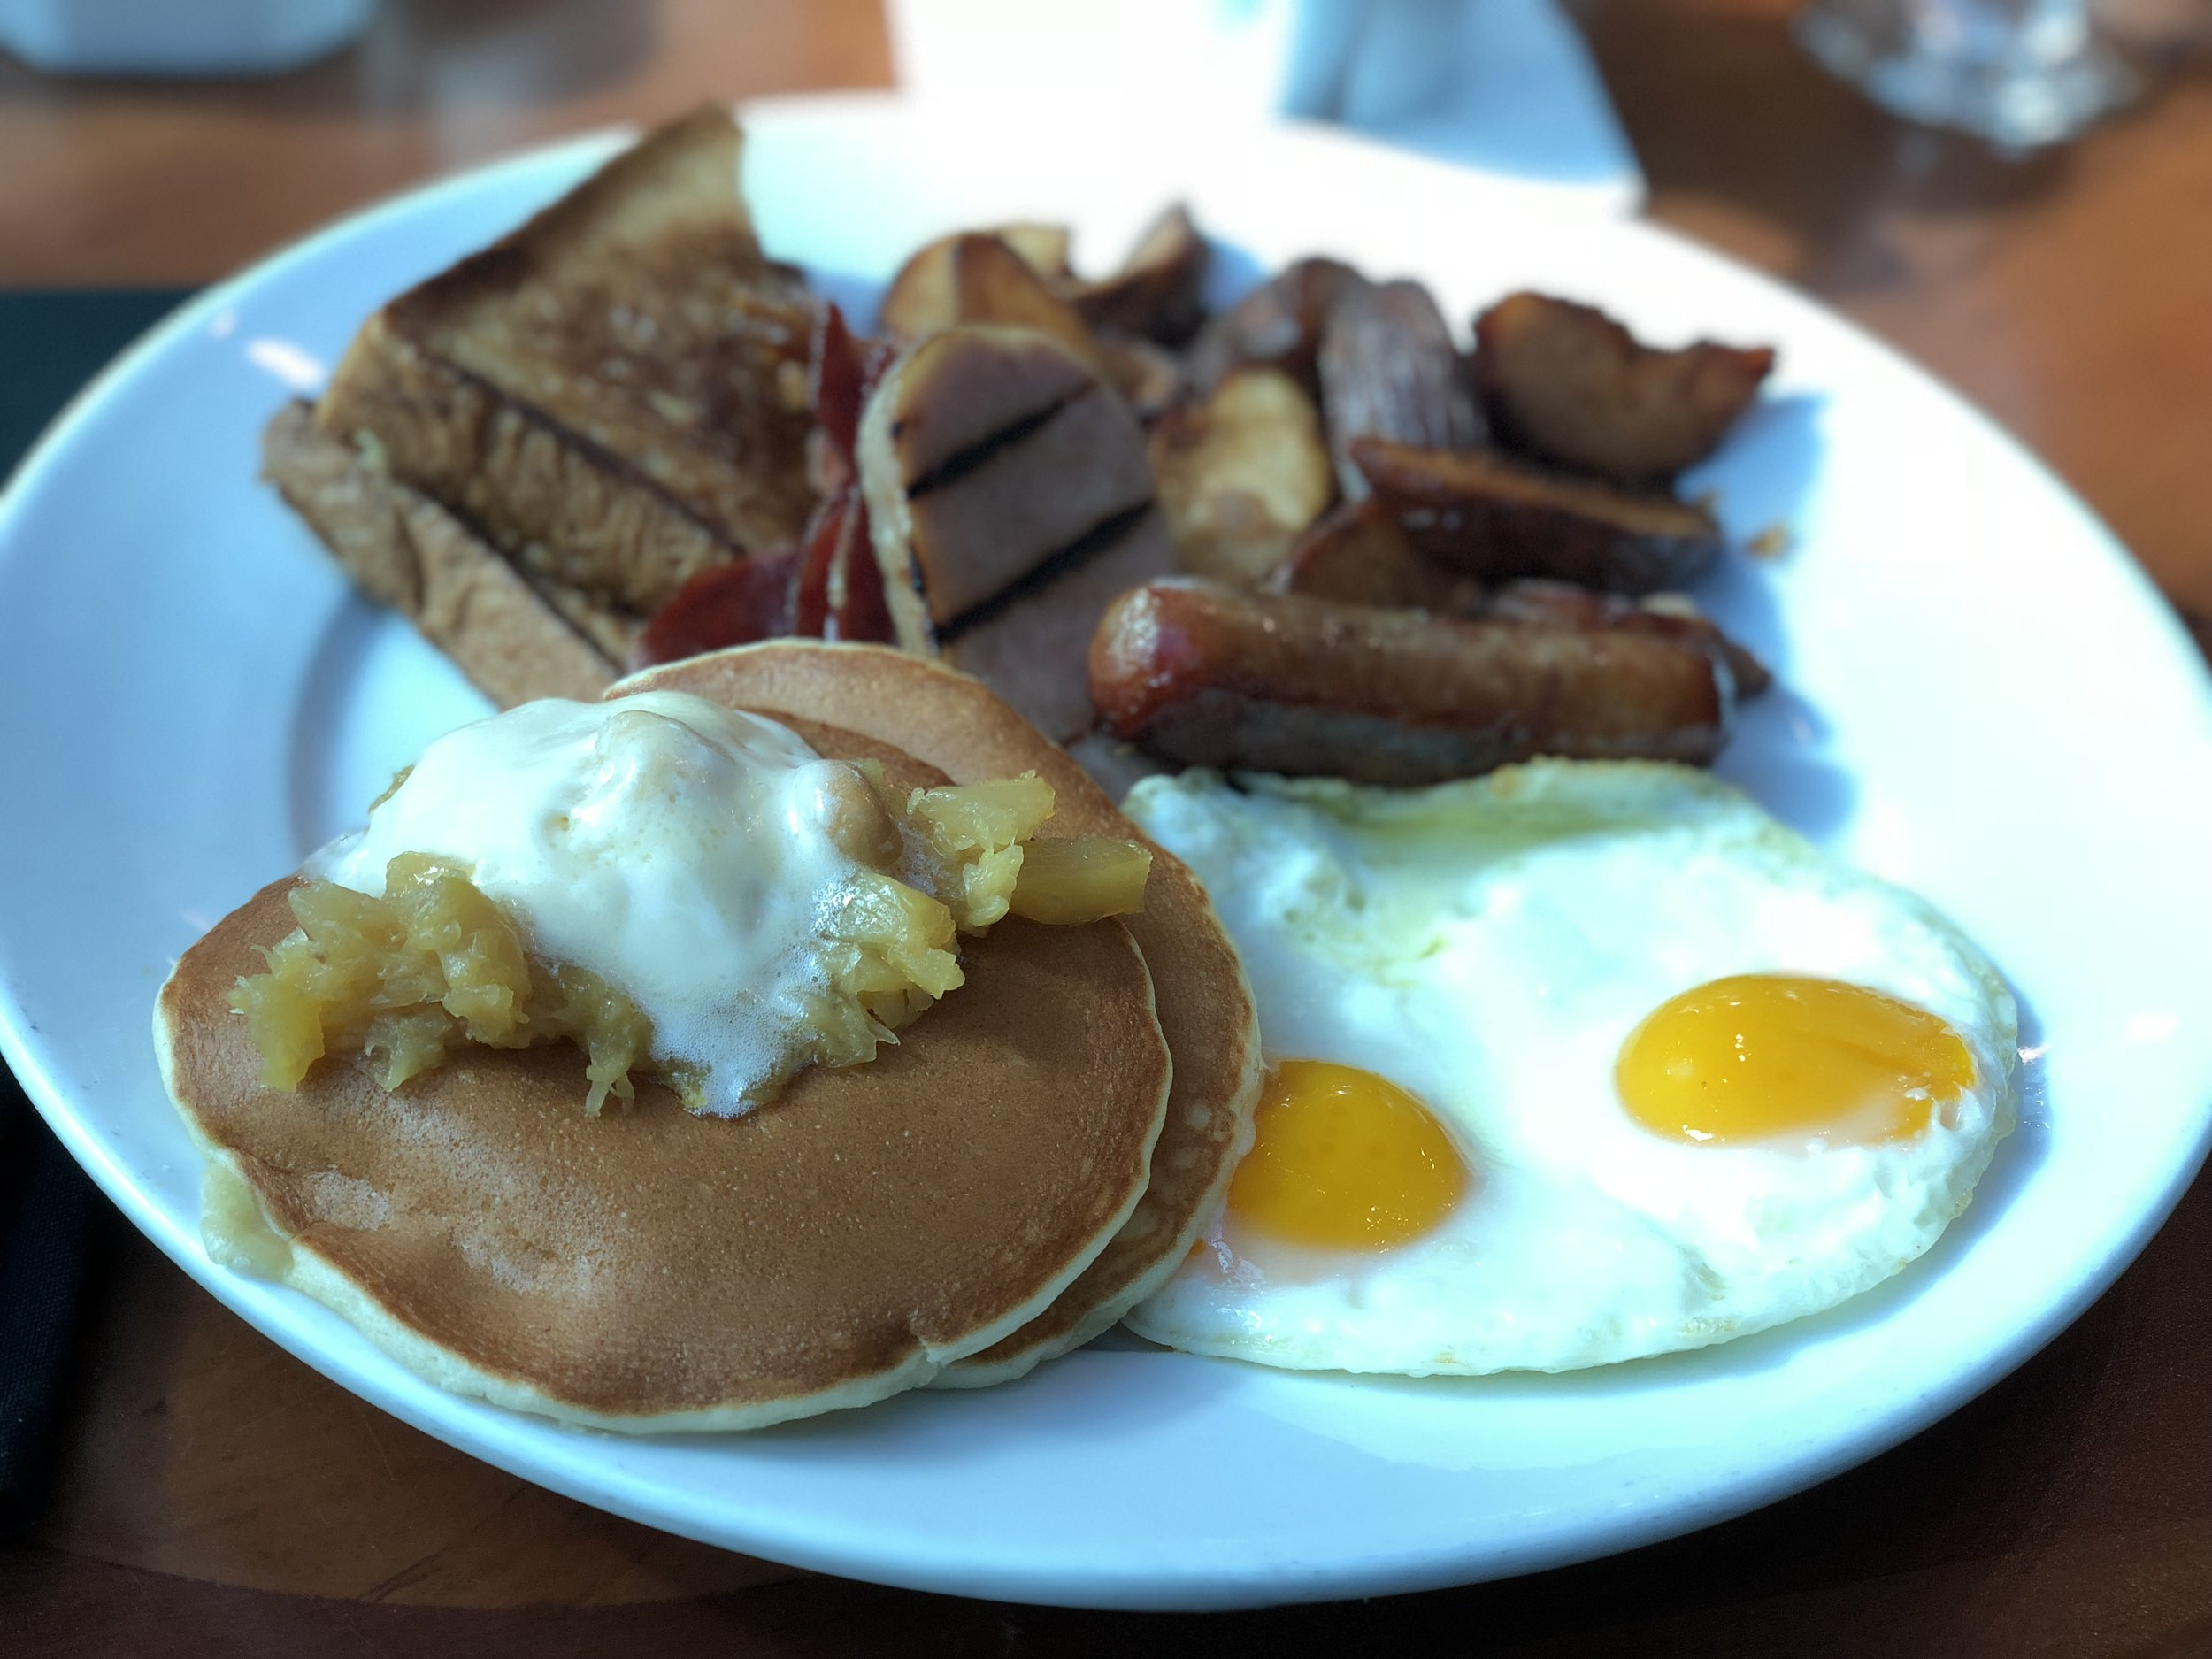 Kona Cafe's Big Kahuna Breakfast. It's not on the menu anymore but they will make it if you ask.